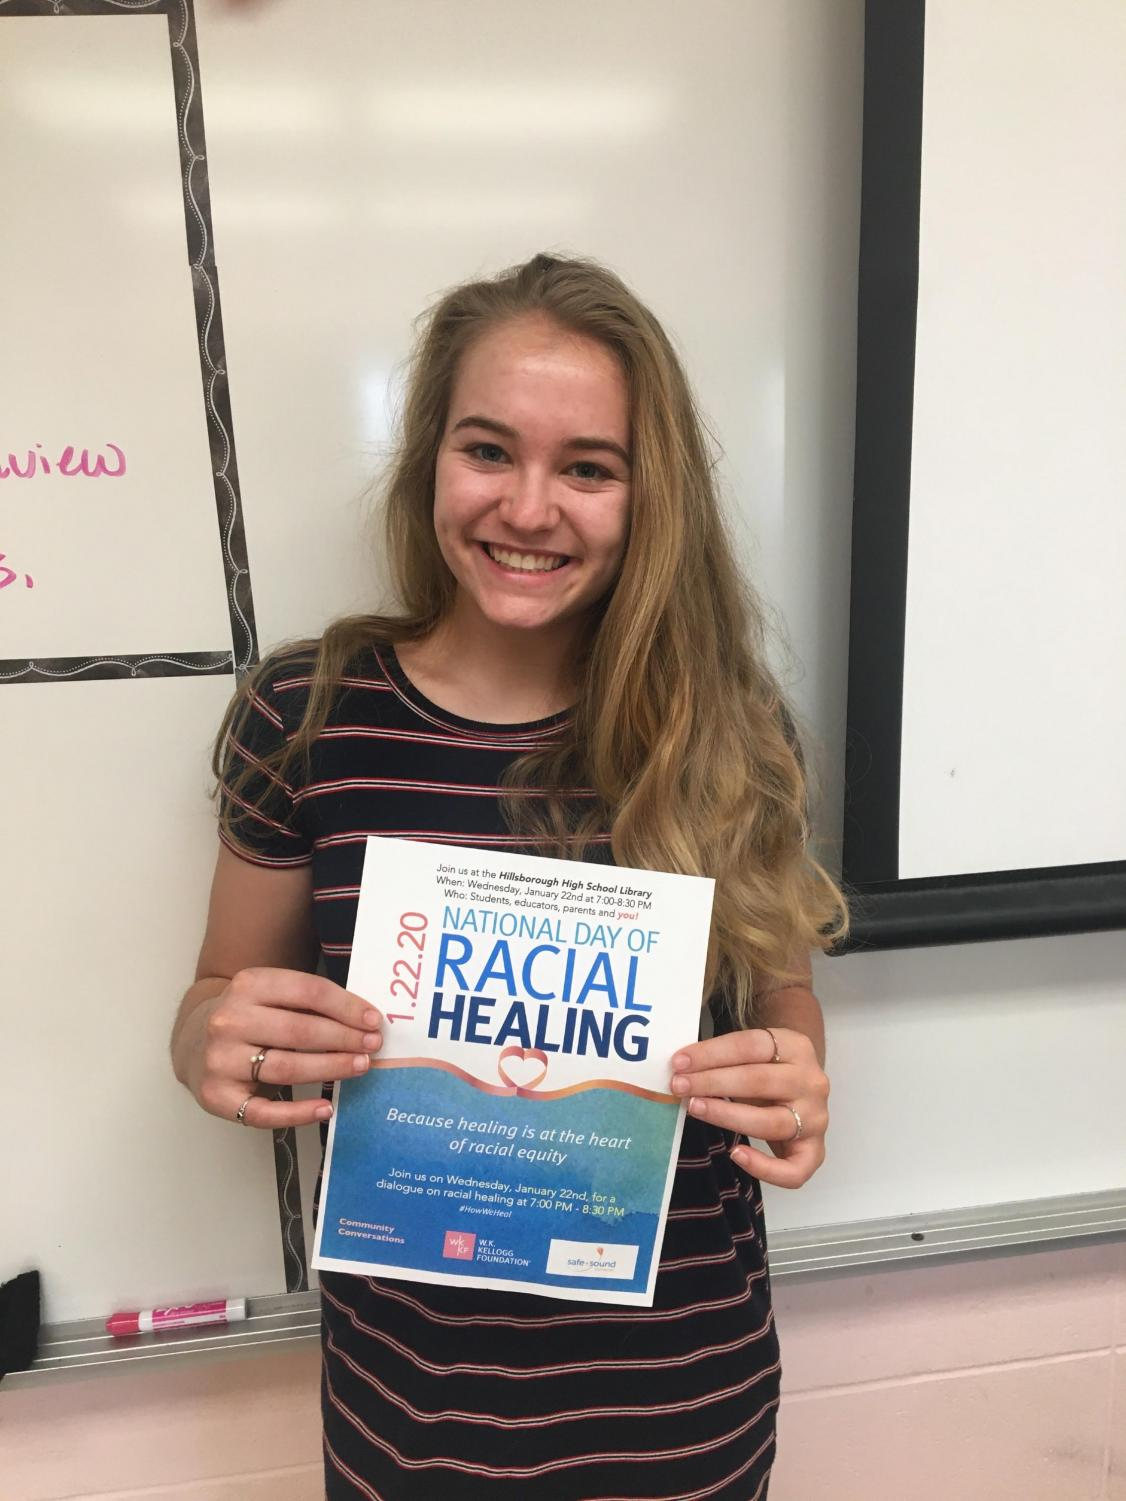 Senior Kaitlyn Dudorf holding the flyer for the Day of Racial Healing event.